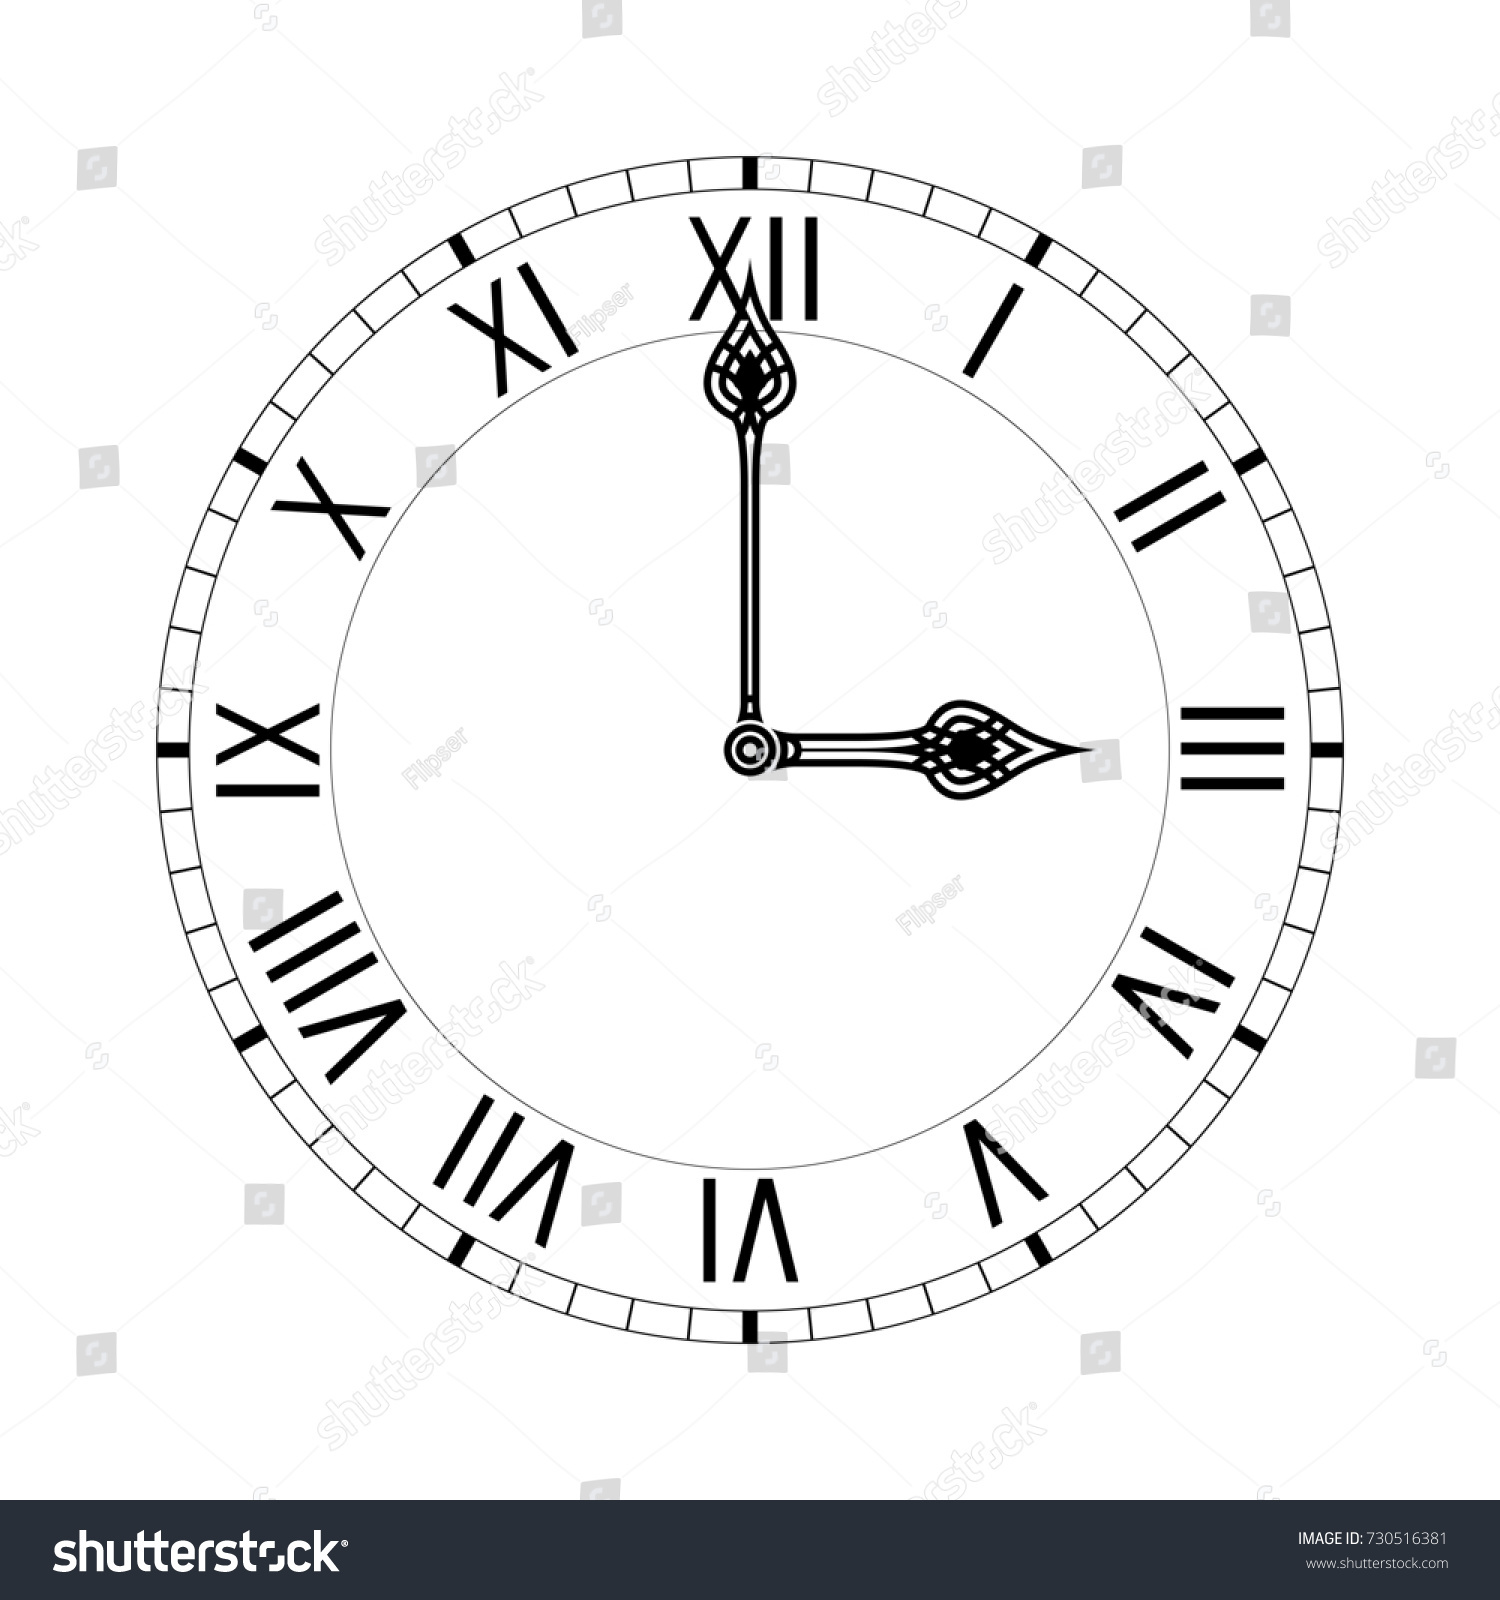 hight resolution of simple clock face with roman numerals illustration isolated on white background raster version